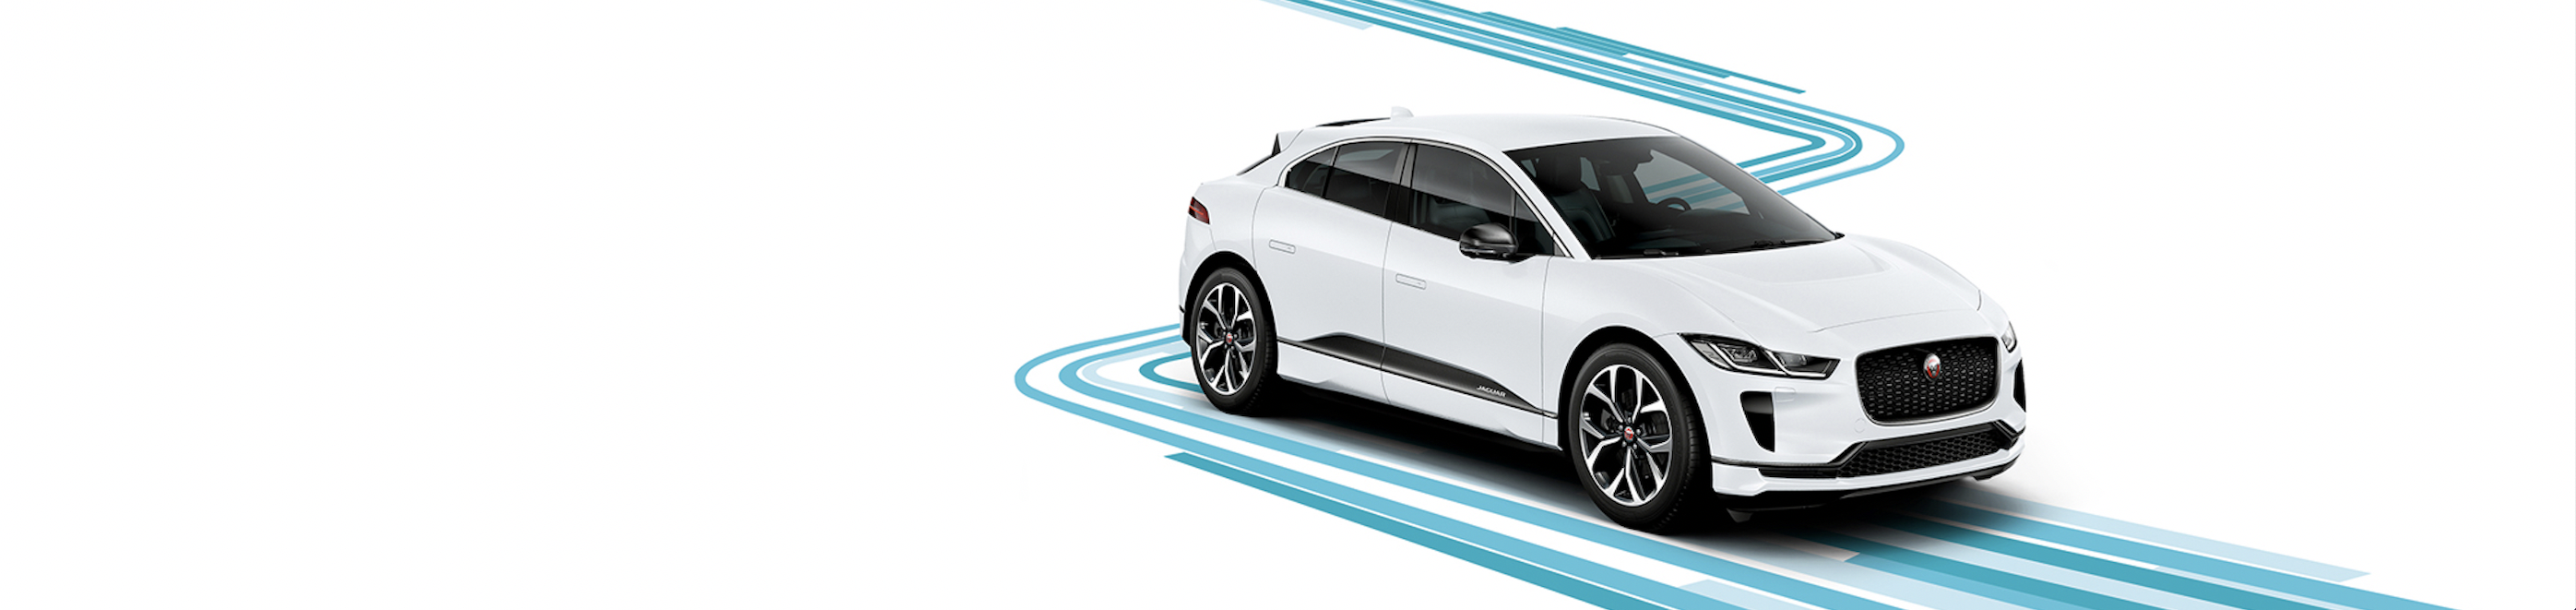 ipace banner